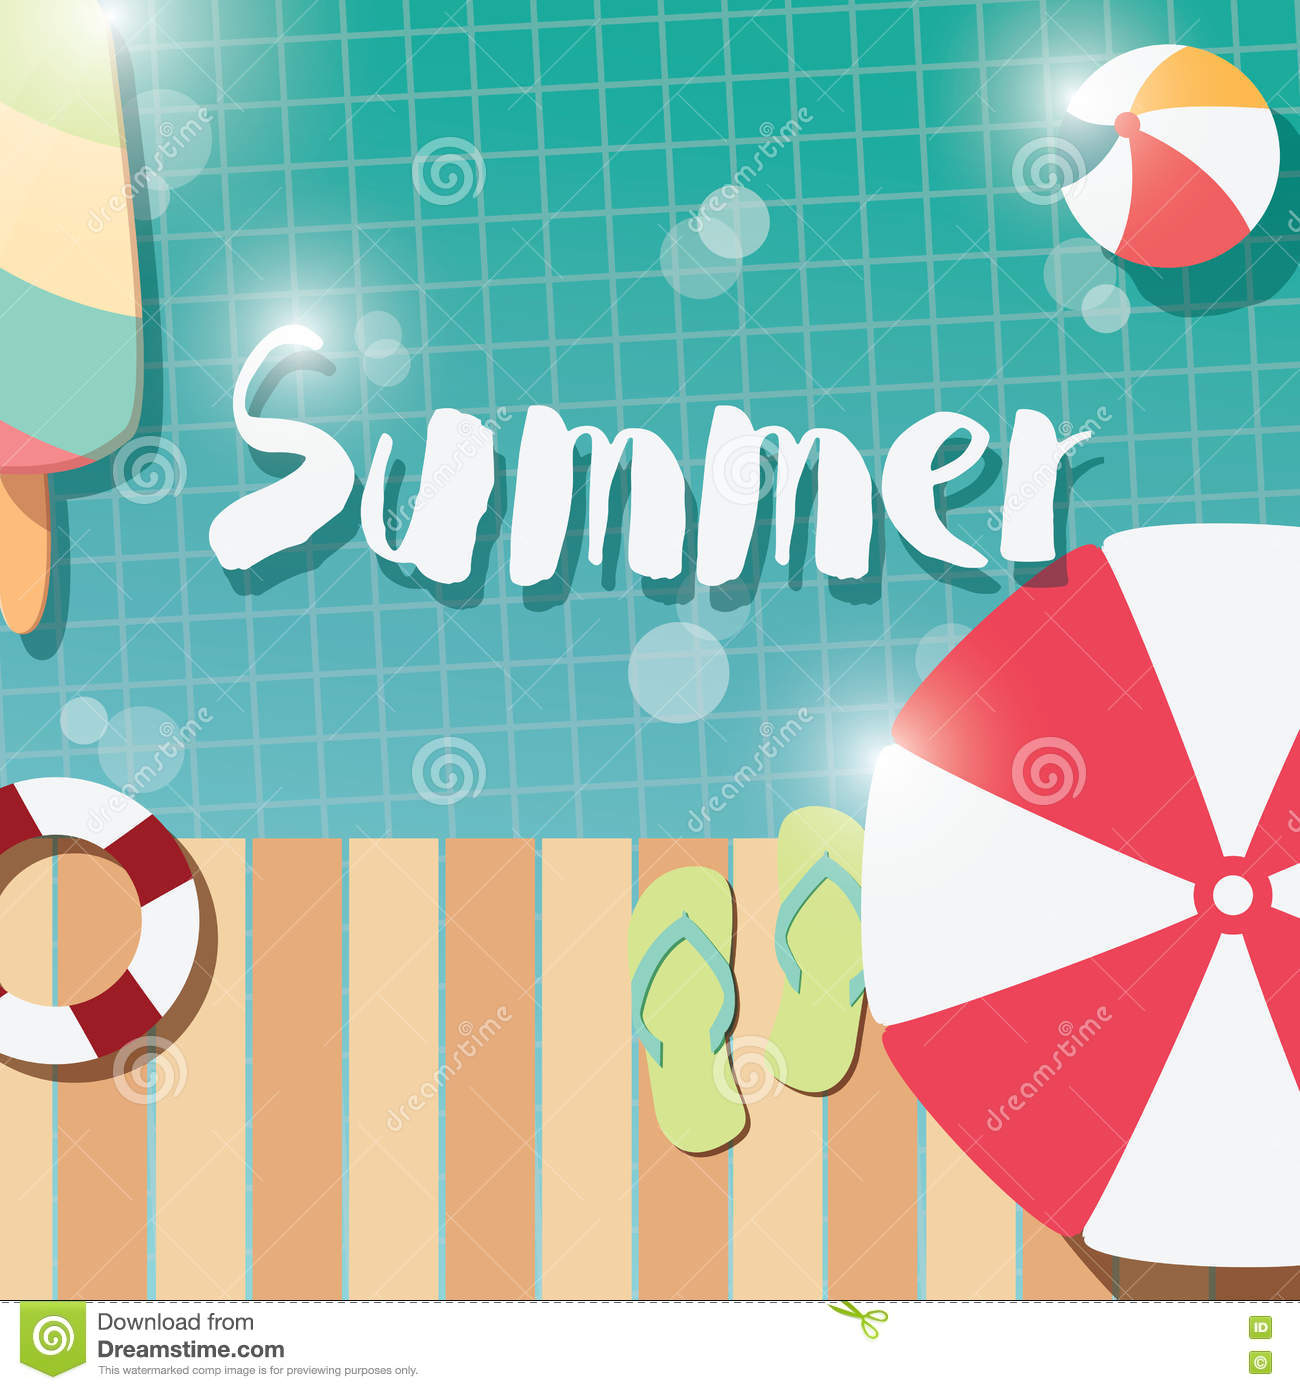 Elements of a poster design - Modern Typographic Summer Poster Design With Ice Cream Swimming Pool And Geometric Elements Royalty Free